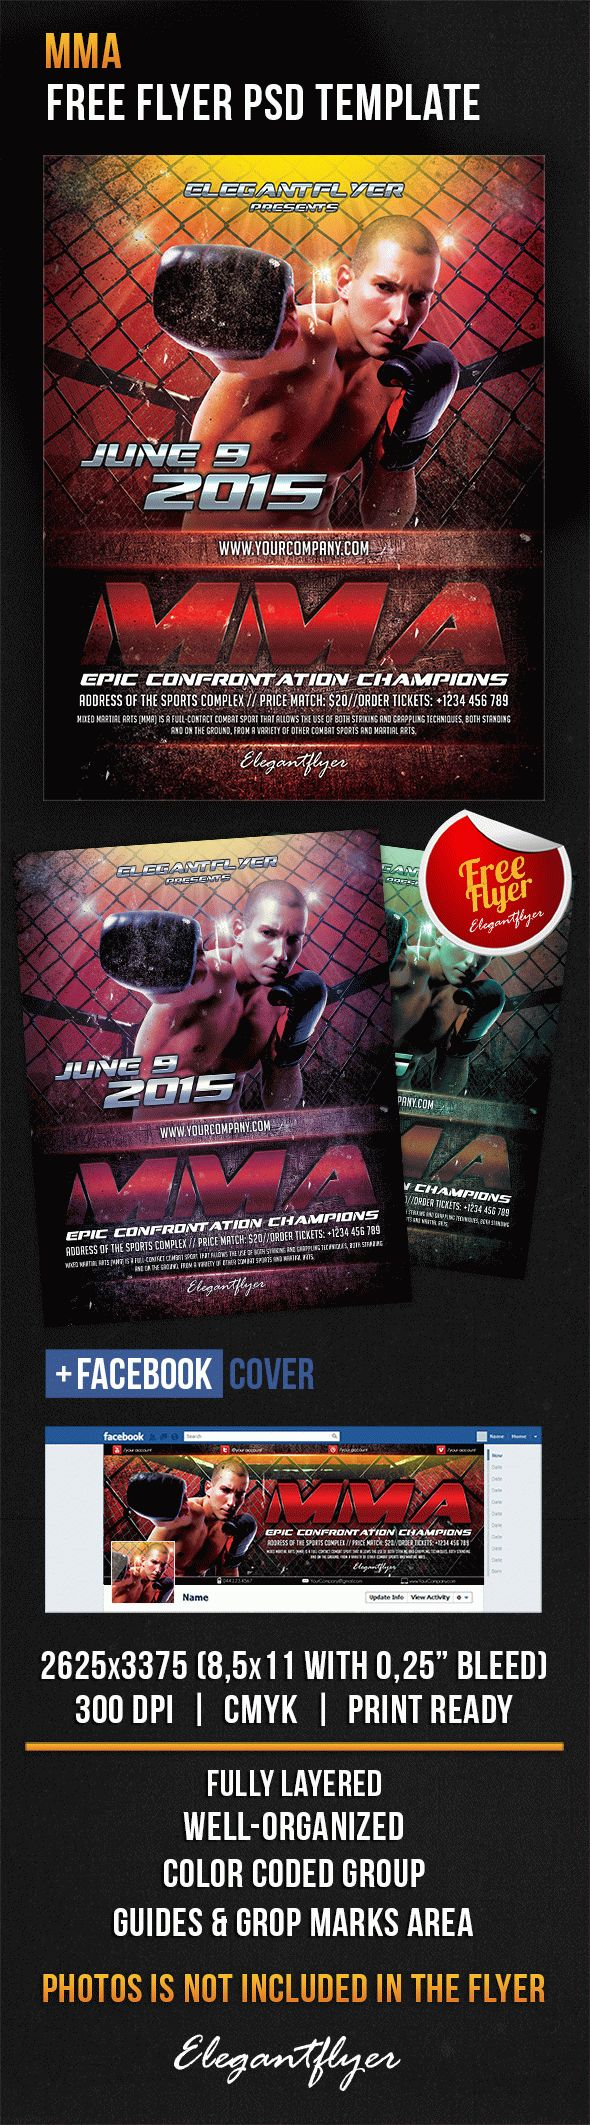 MMA – Free Flyer PSD Template + Facebook Cover